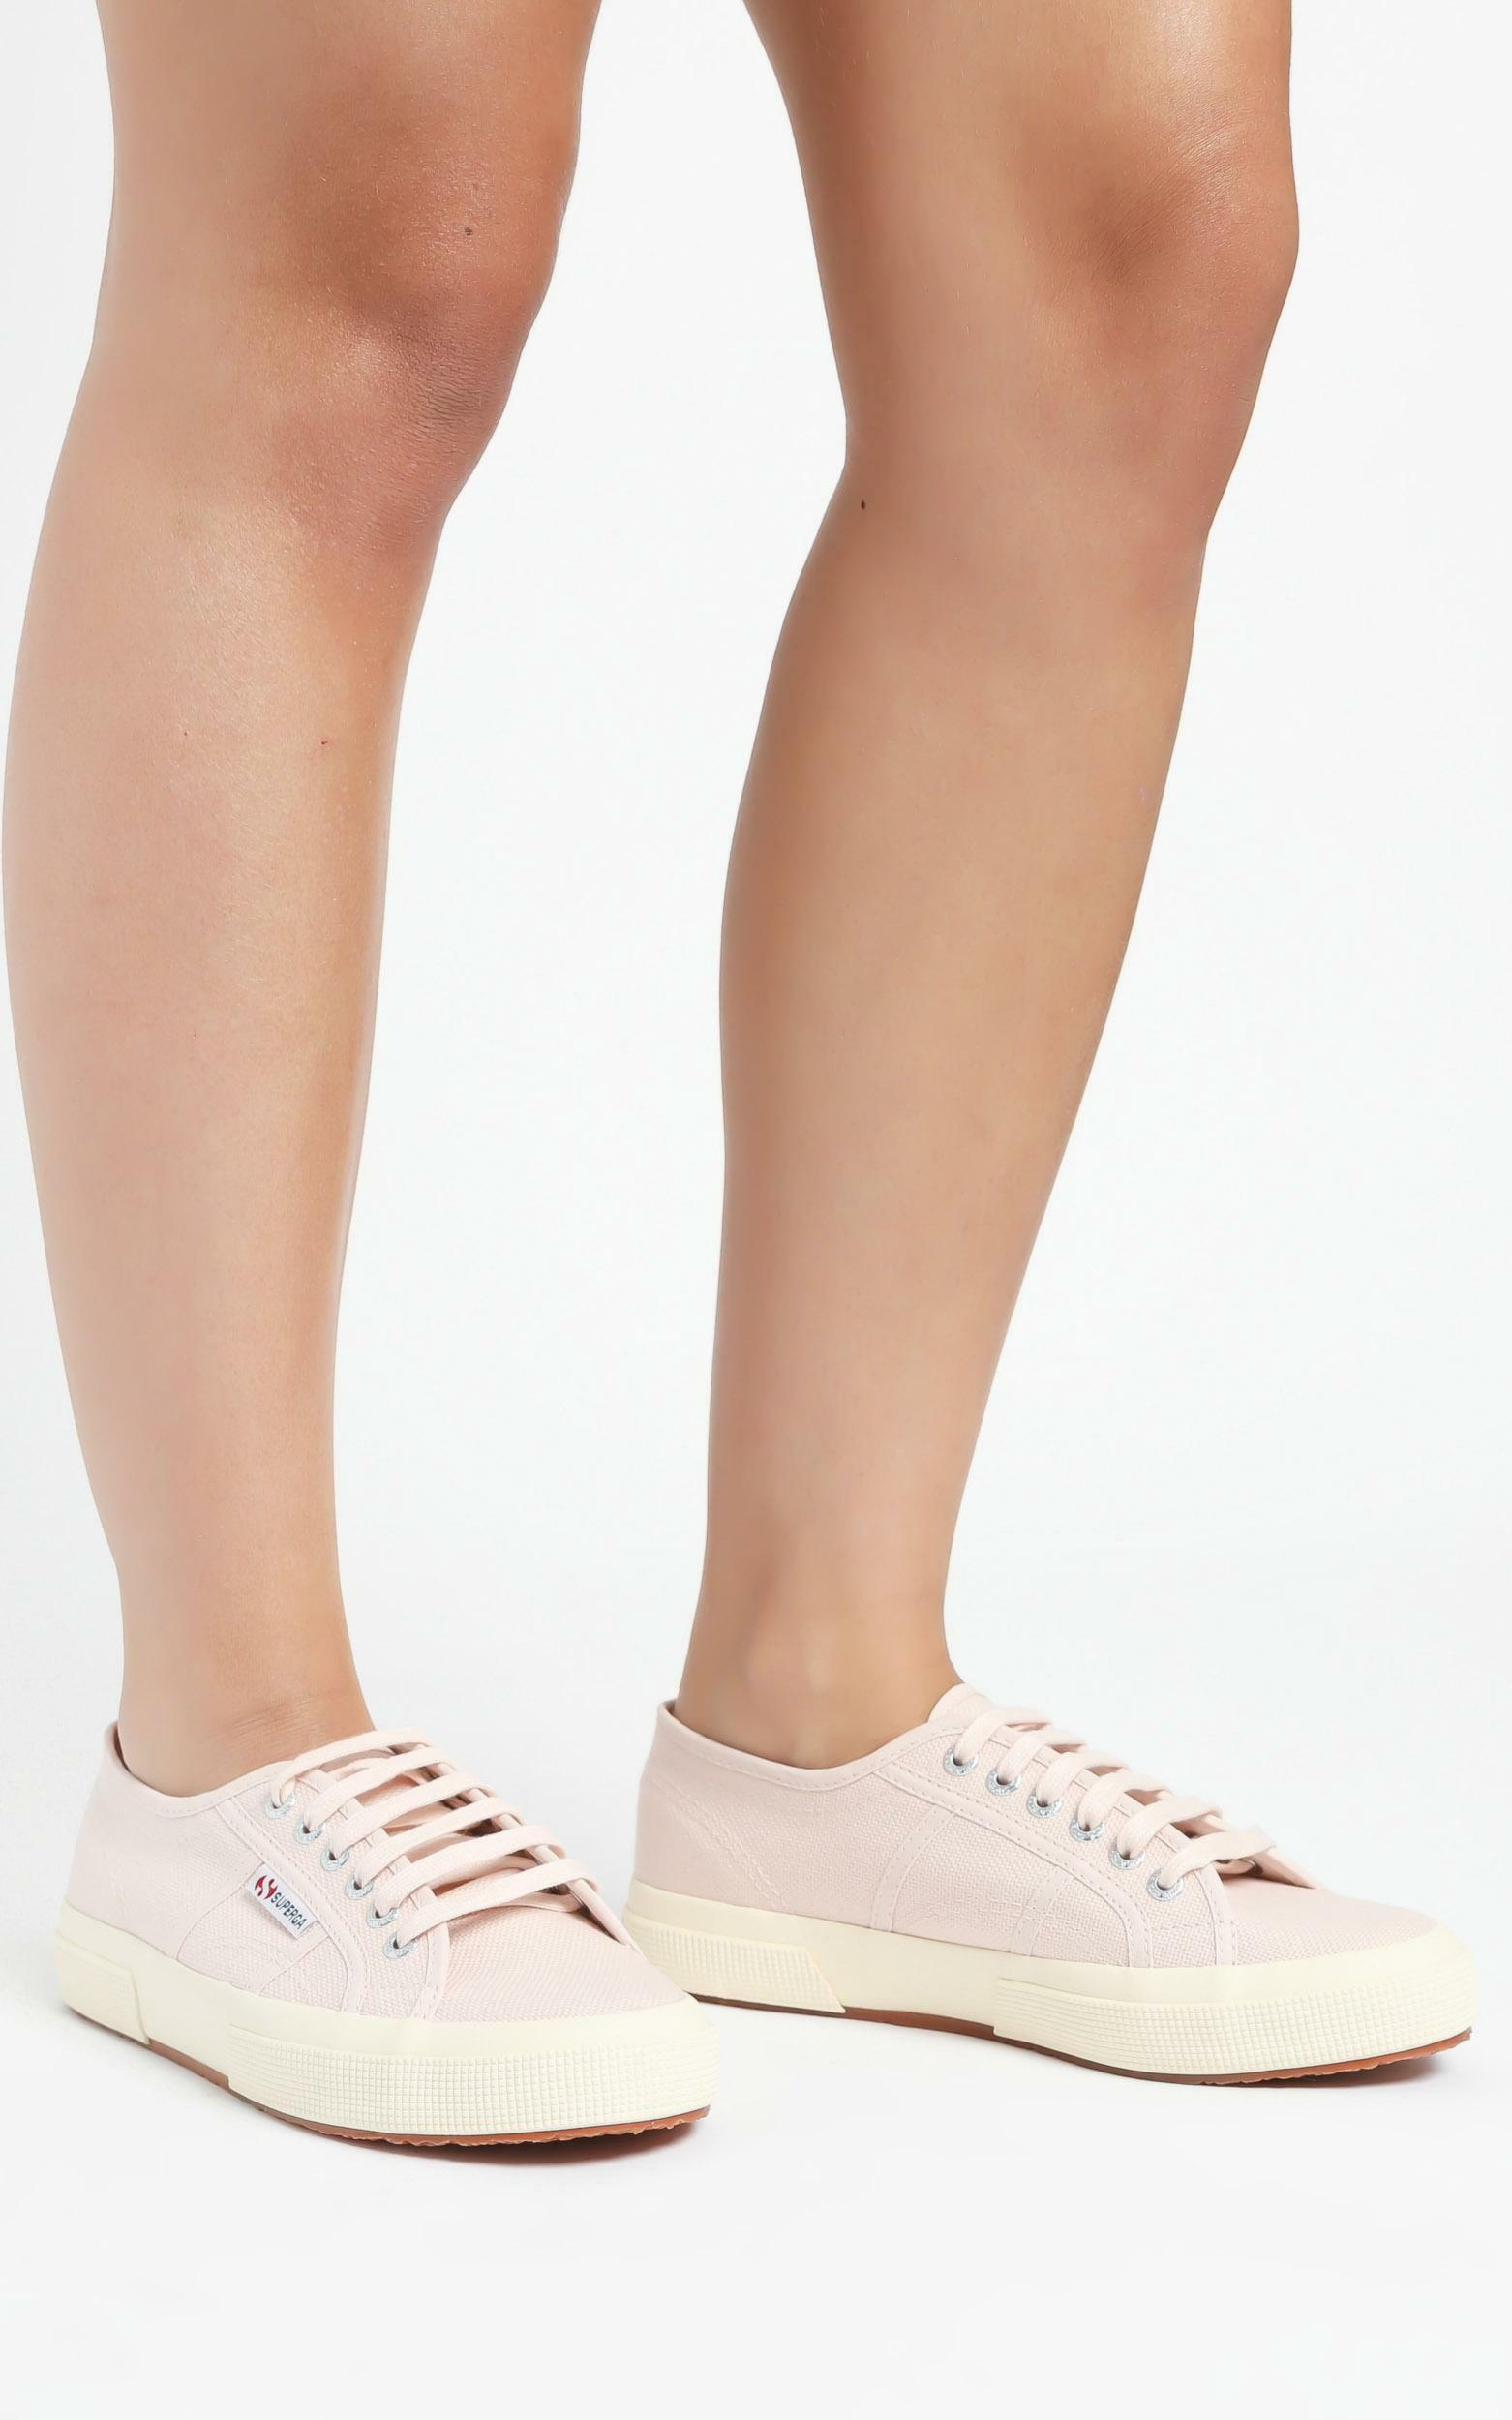 Superga - 2750 Cotu Classic Sneakers in pink peach blush - off white - 05, WHT1, hi-res image number null